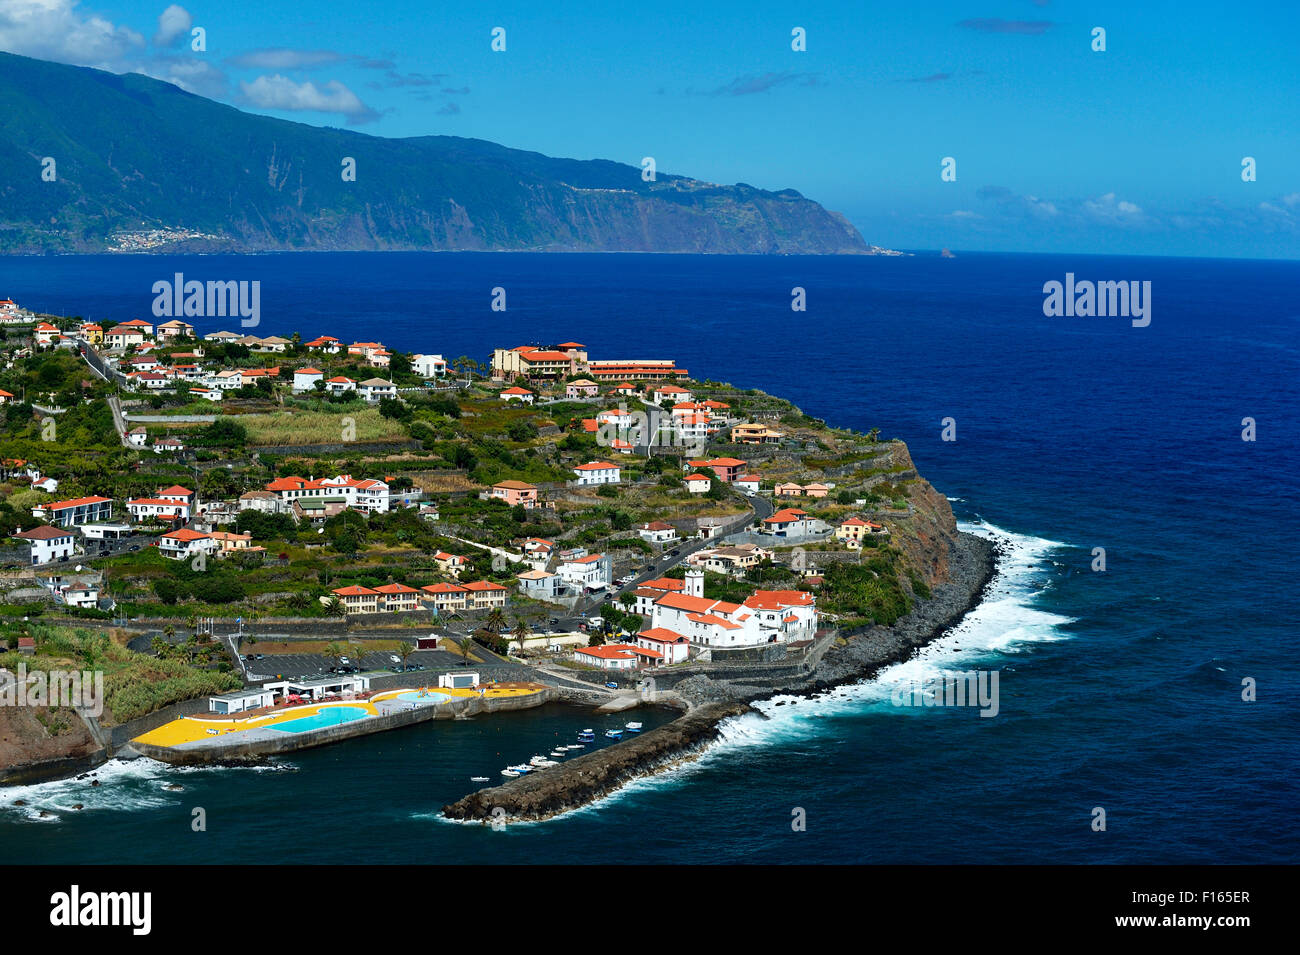 View of the town and harbor, north coast, Ponta Delgada, Madeira, Portugal - Stock Image